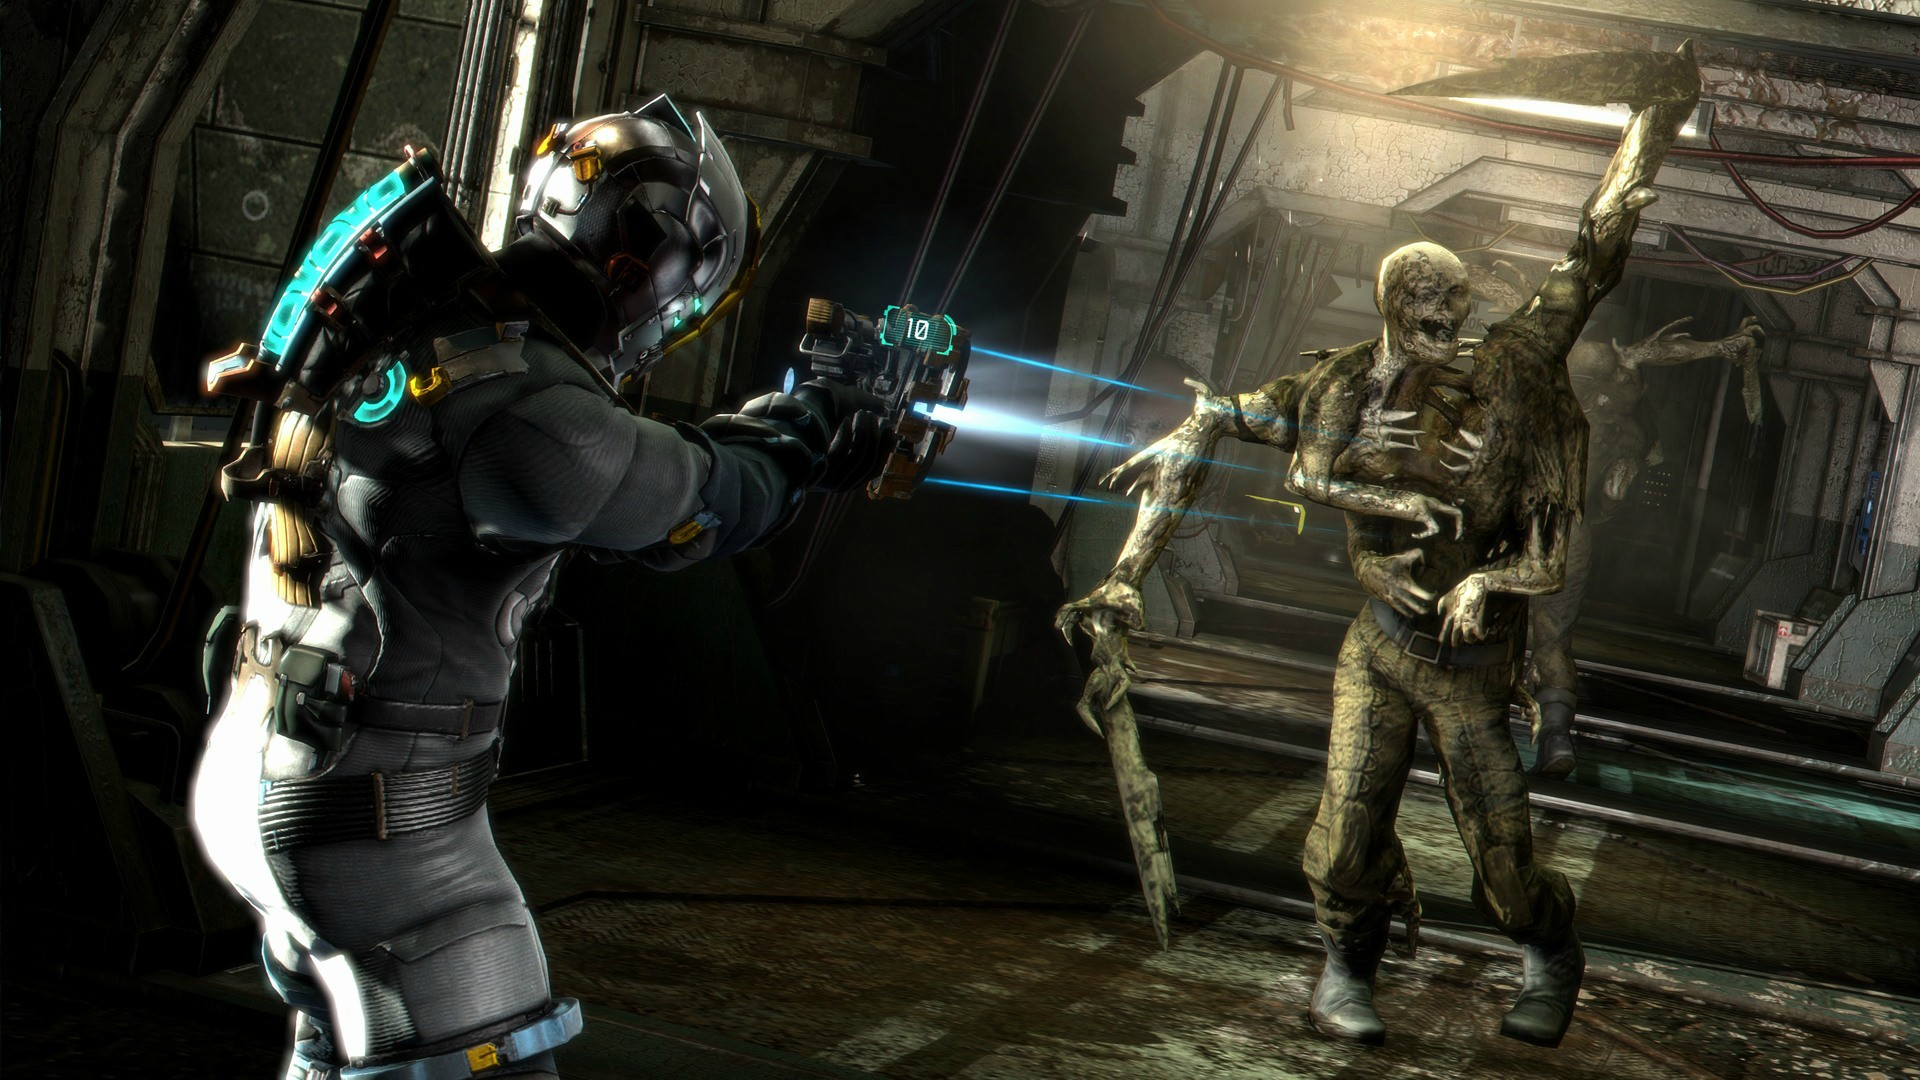 Dead Space 3 to allow micro-transactions